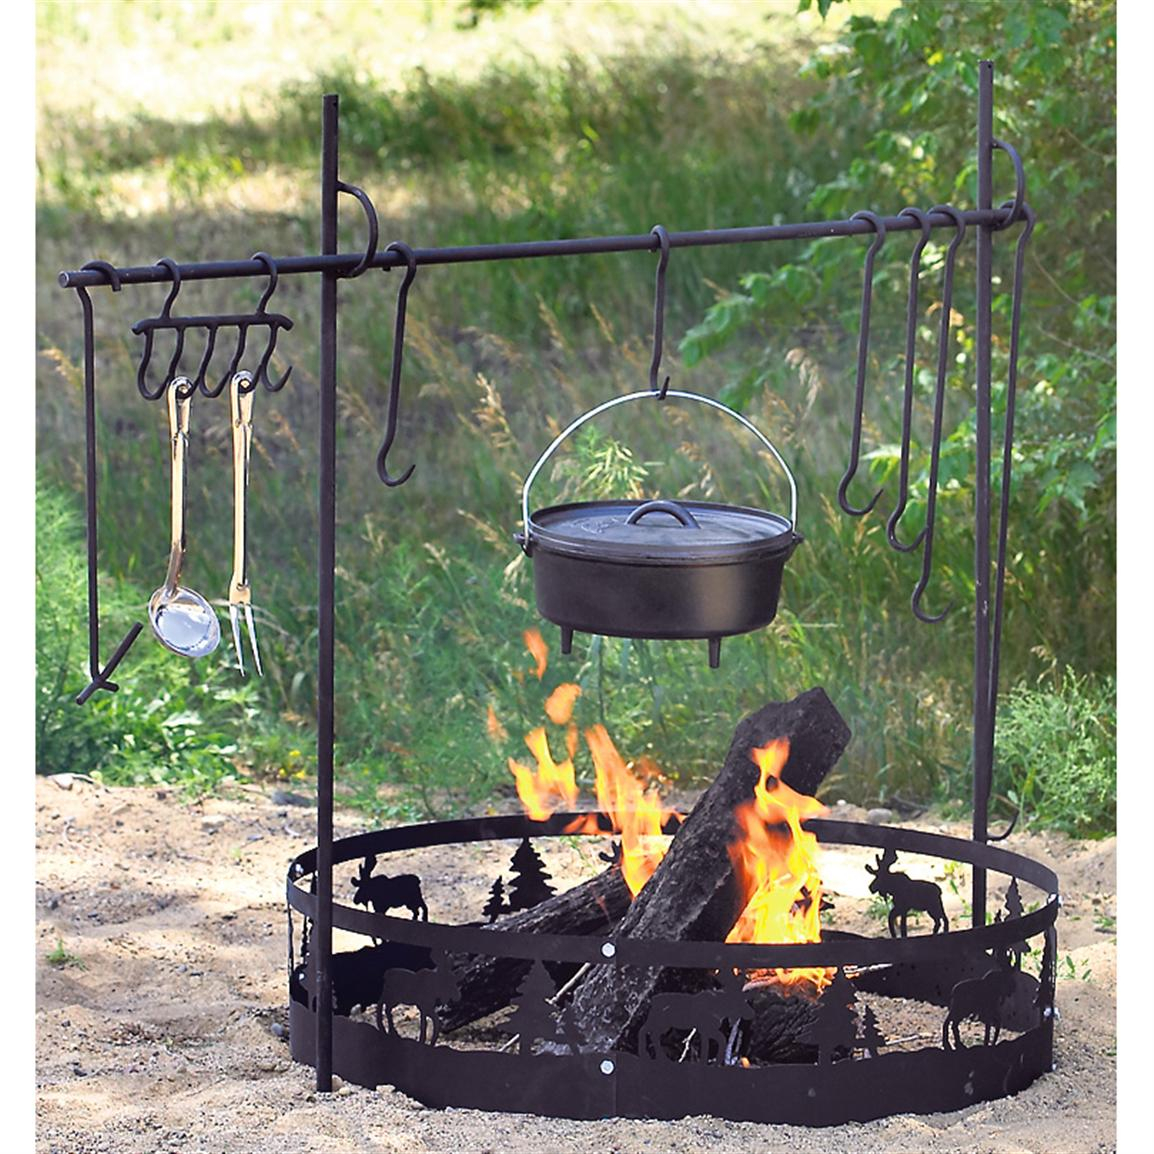 Fire Pit Cooking Tools Fireplace Design Ideas for size 1154 X 1154